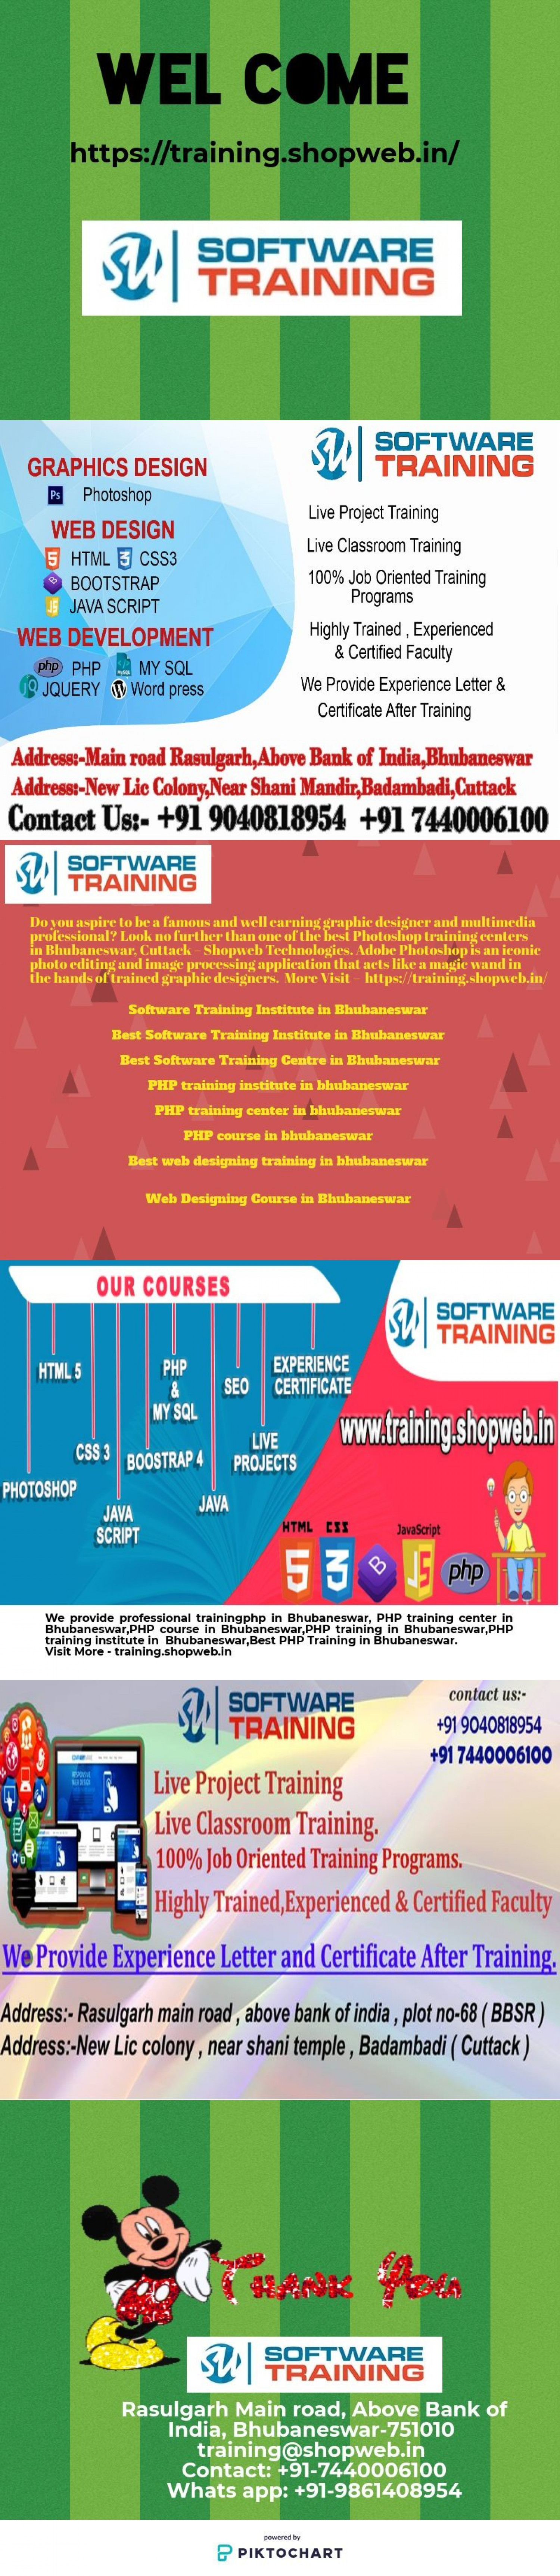 Best Software Training Centre in Bhubaneswar | uCollect